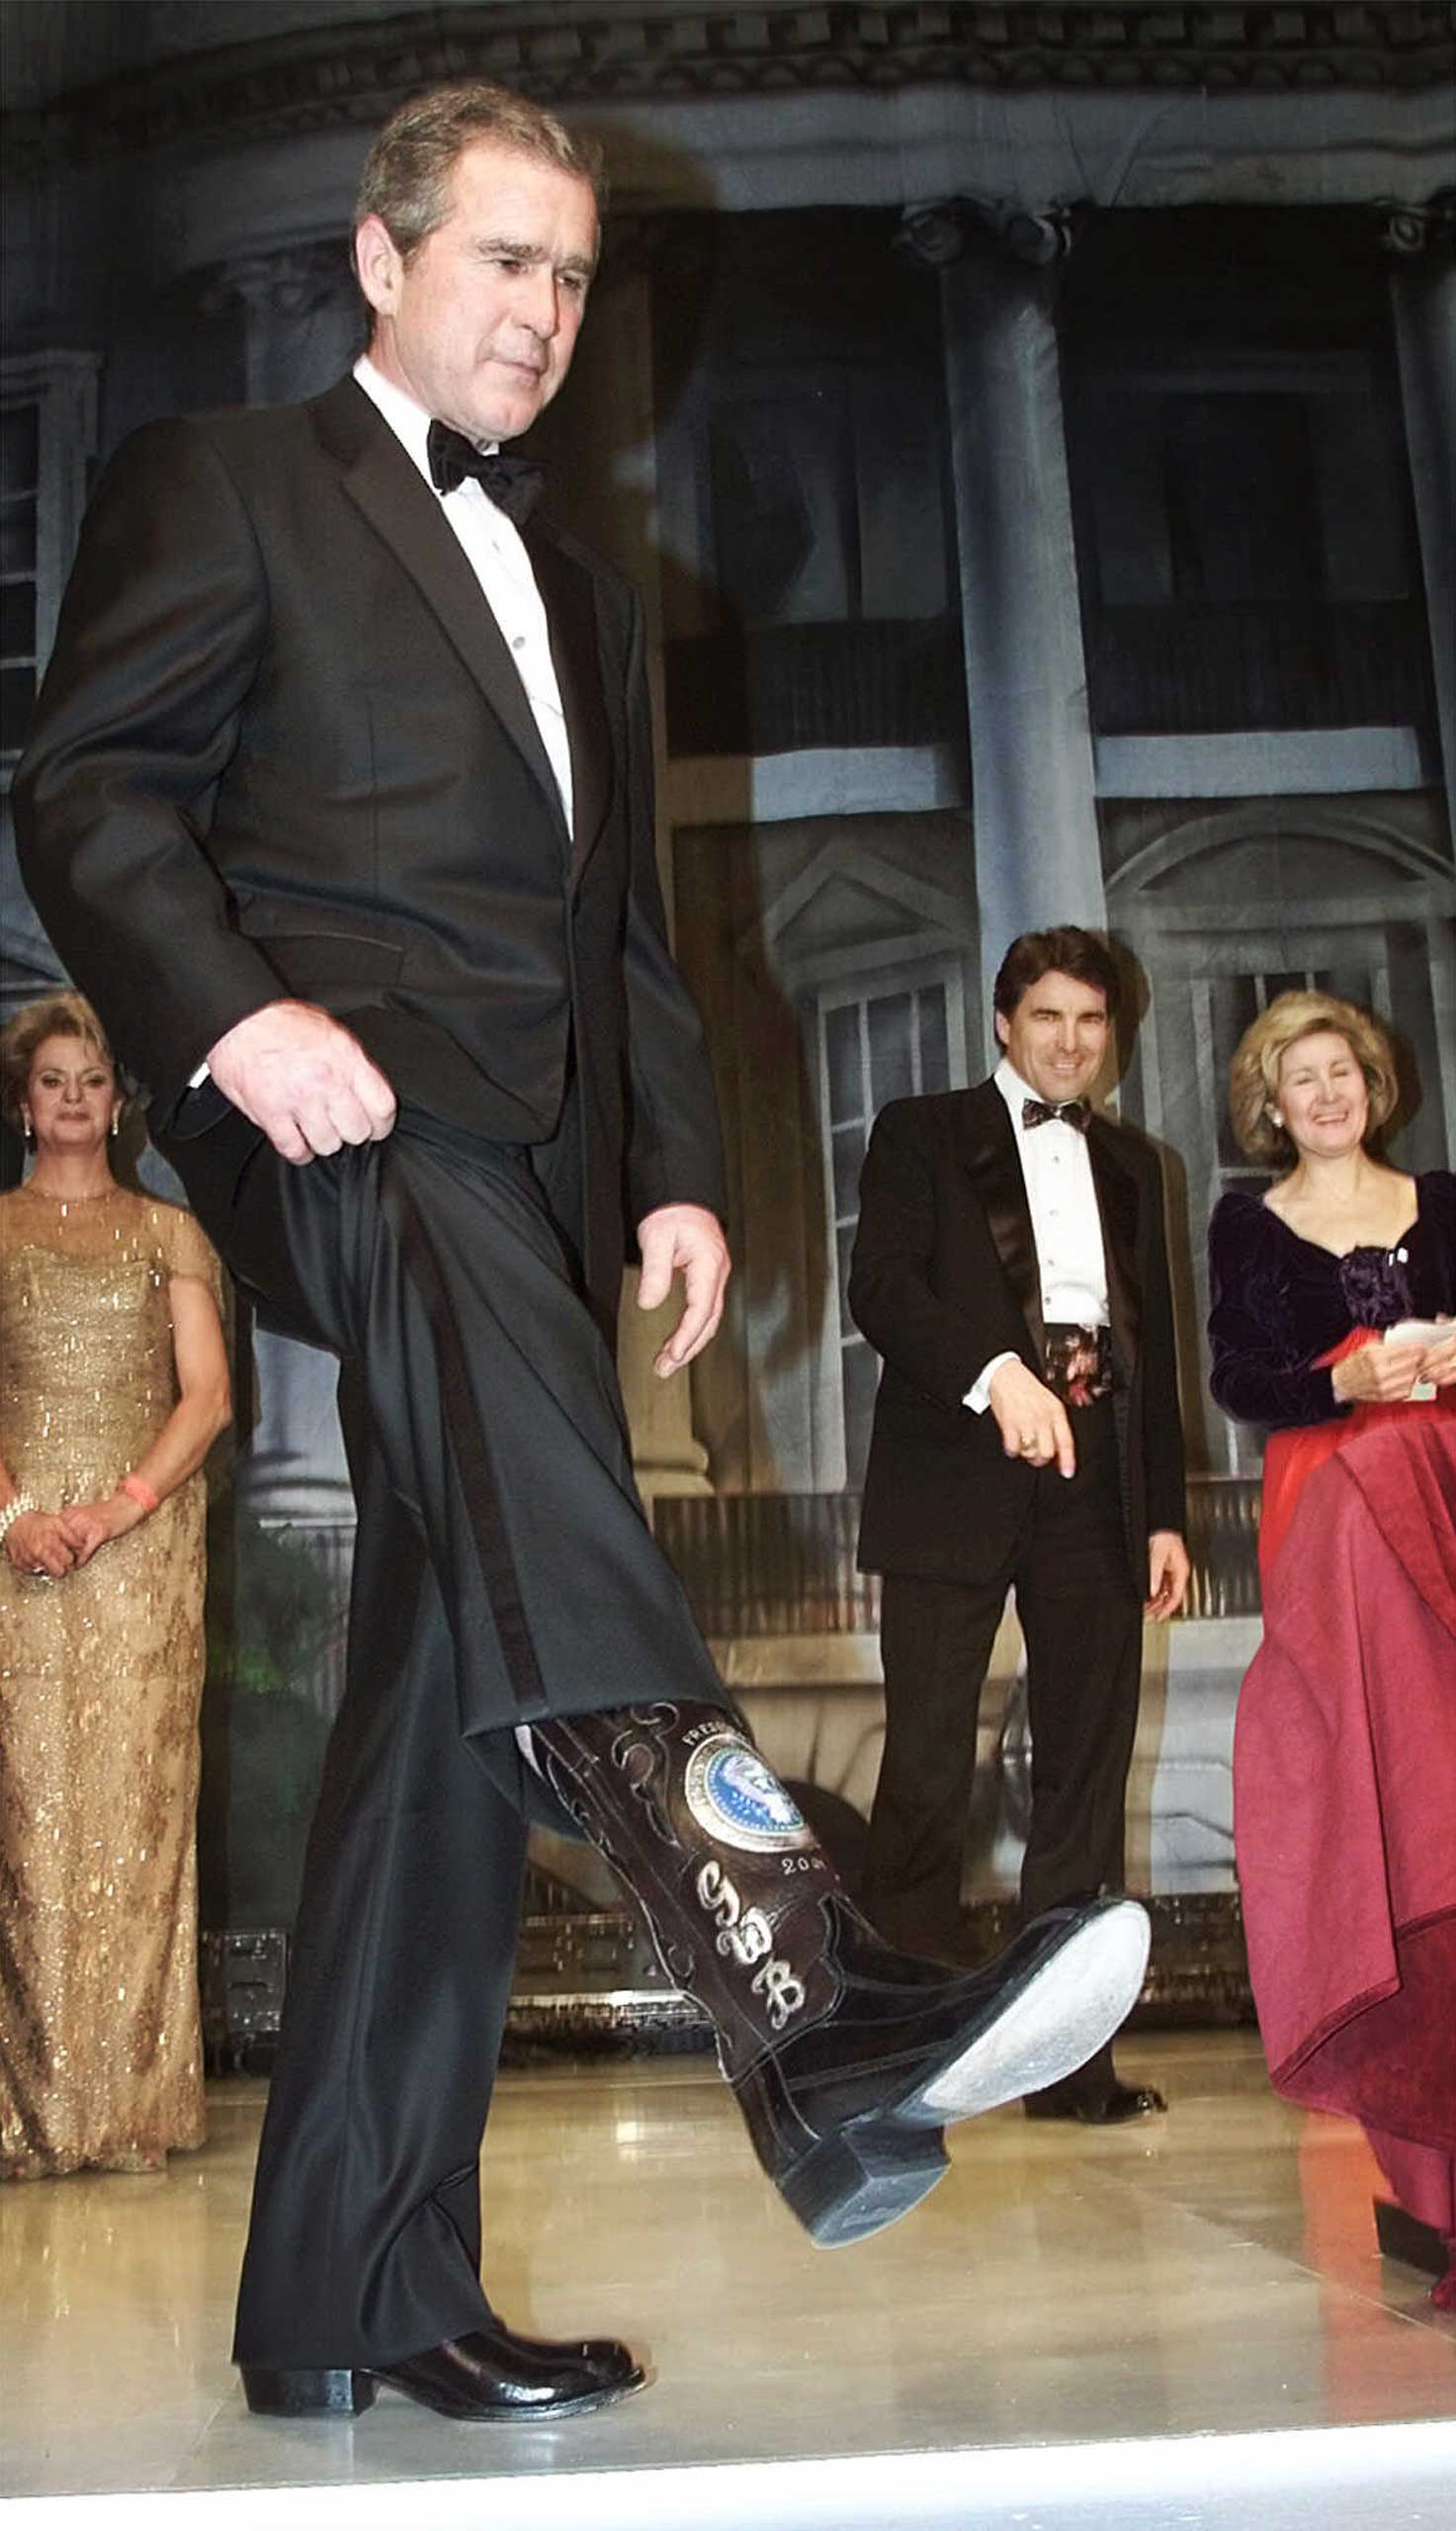 President George W. Bush, showing off boots with the presidential seal here at his inauguration, furthered the trend.